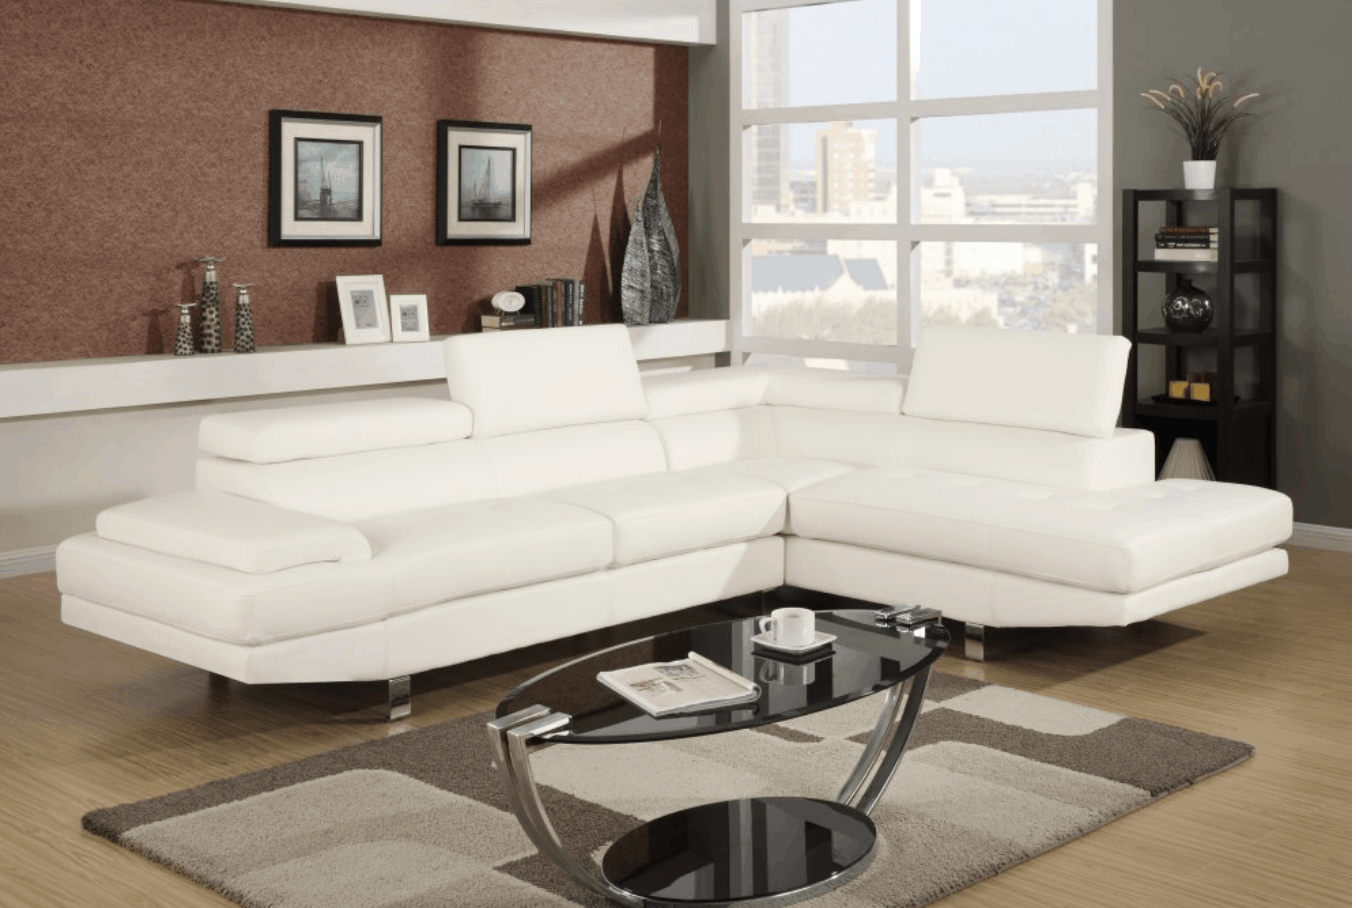 Remarkable 6 Types Of Small Sectional Sofas For Small Spaces Ncnpc Chair Design For Home Ncnpcorg